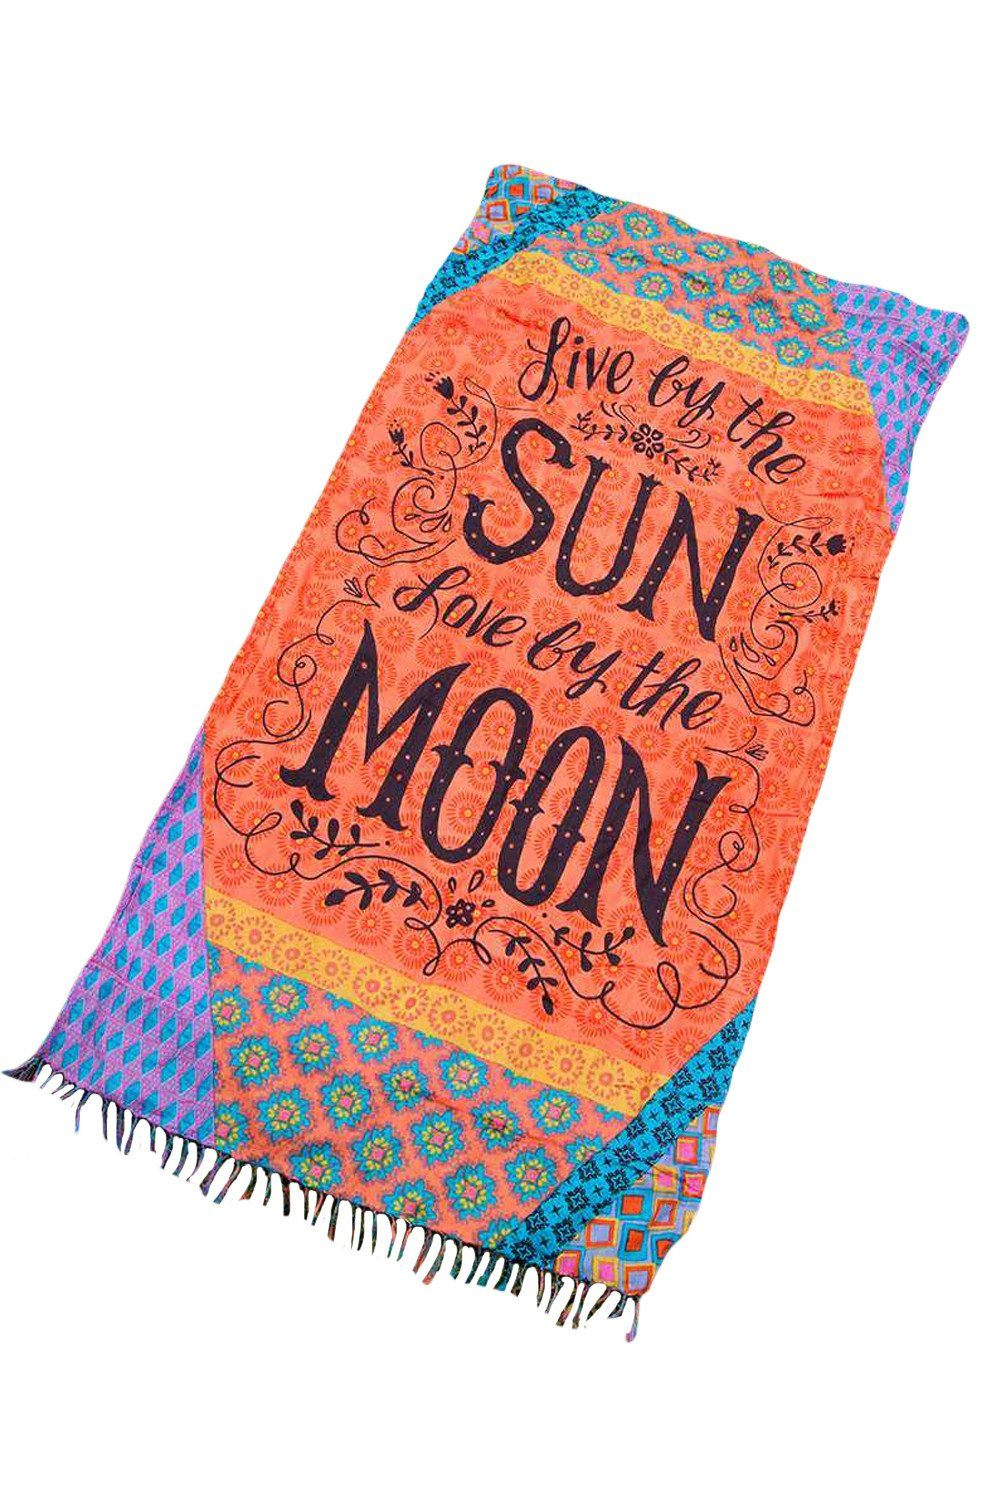 Sun and Moon Beach Towel - Roots and Sticks